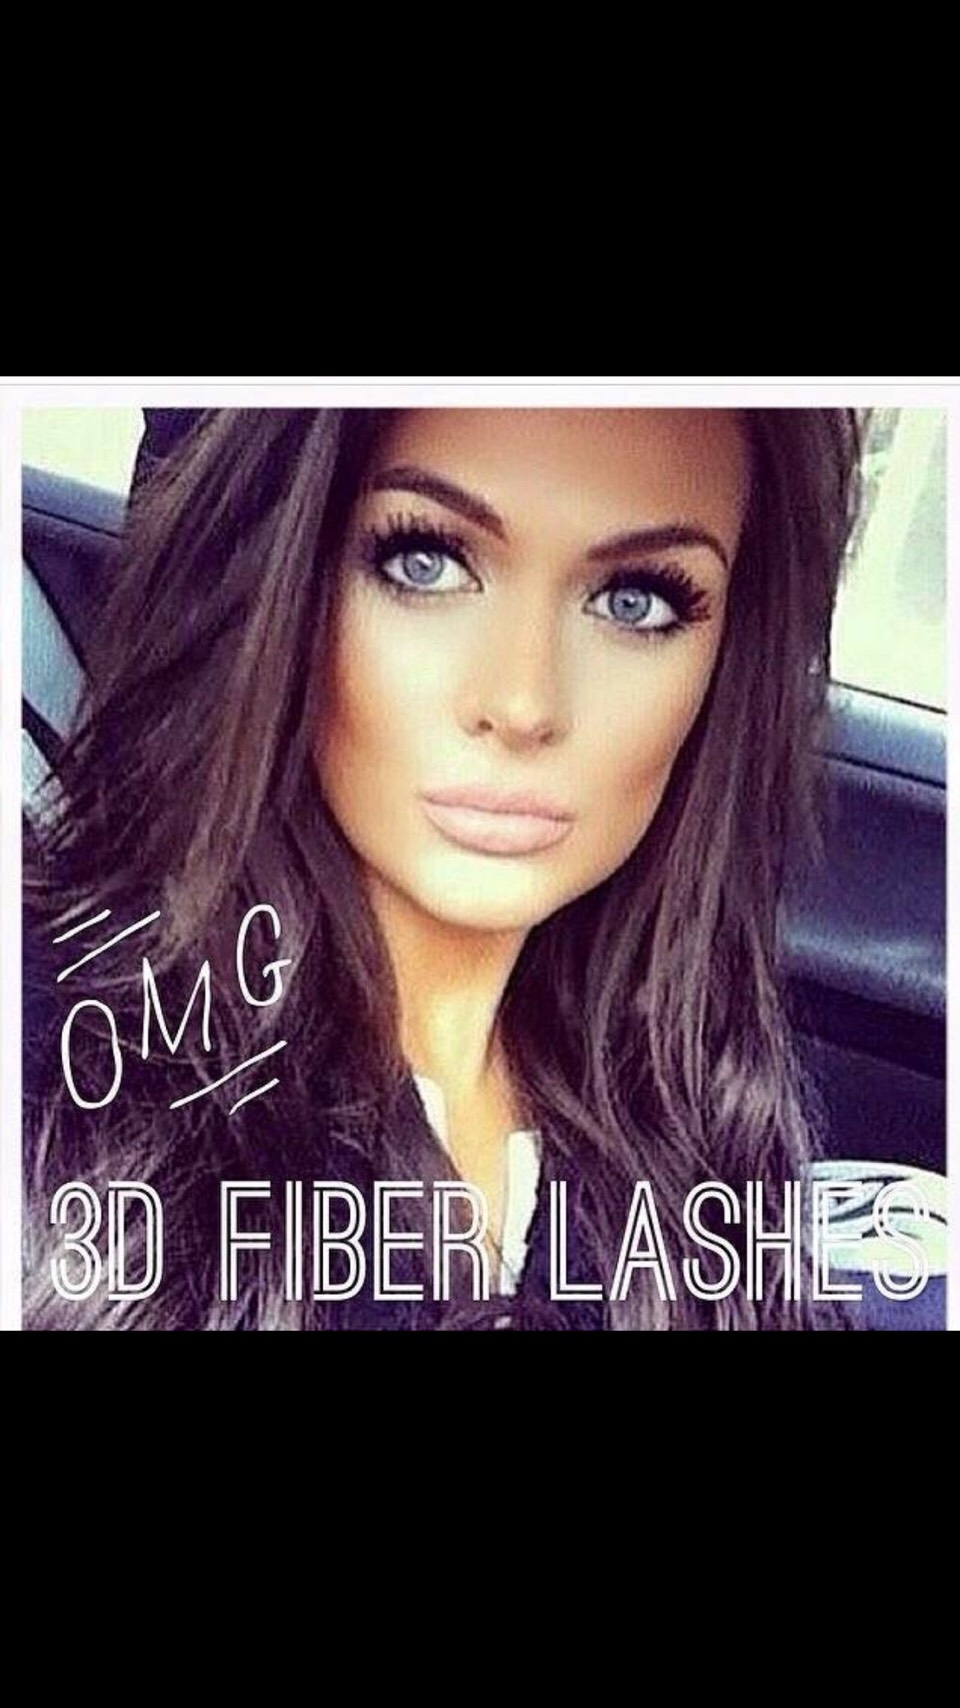 Getting OMG lashes is so easy and only $29!!  Get yours here!!  https://www.youniqueproducts.com/JessicaField/party/1431105/view